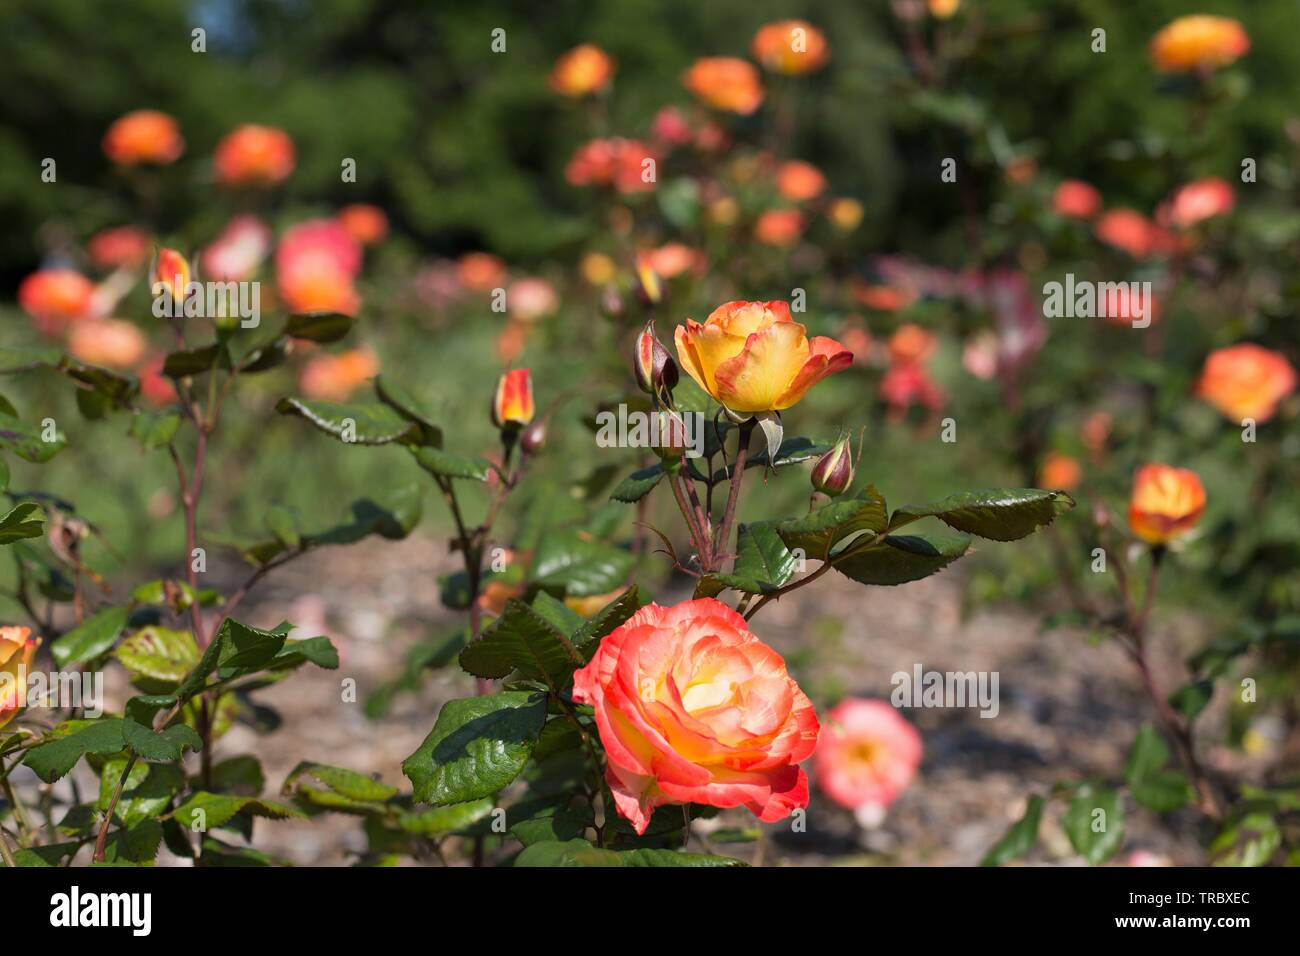 Chihuly Floribunda roses at Bush's Pasture Park in Salem, Oregon, USA. - Stock Image